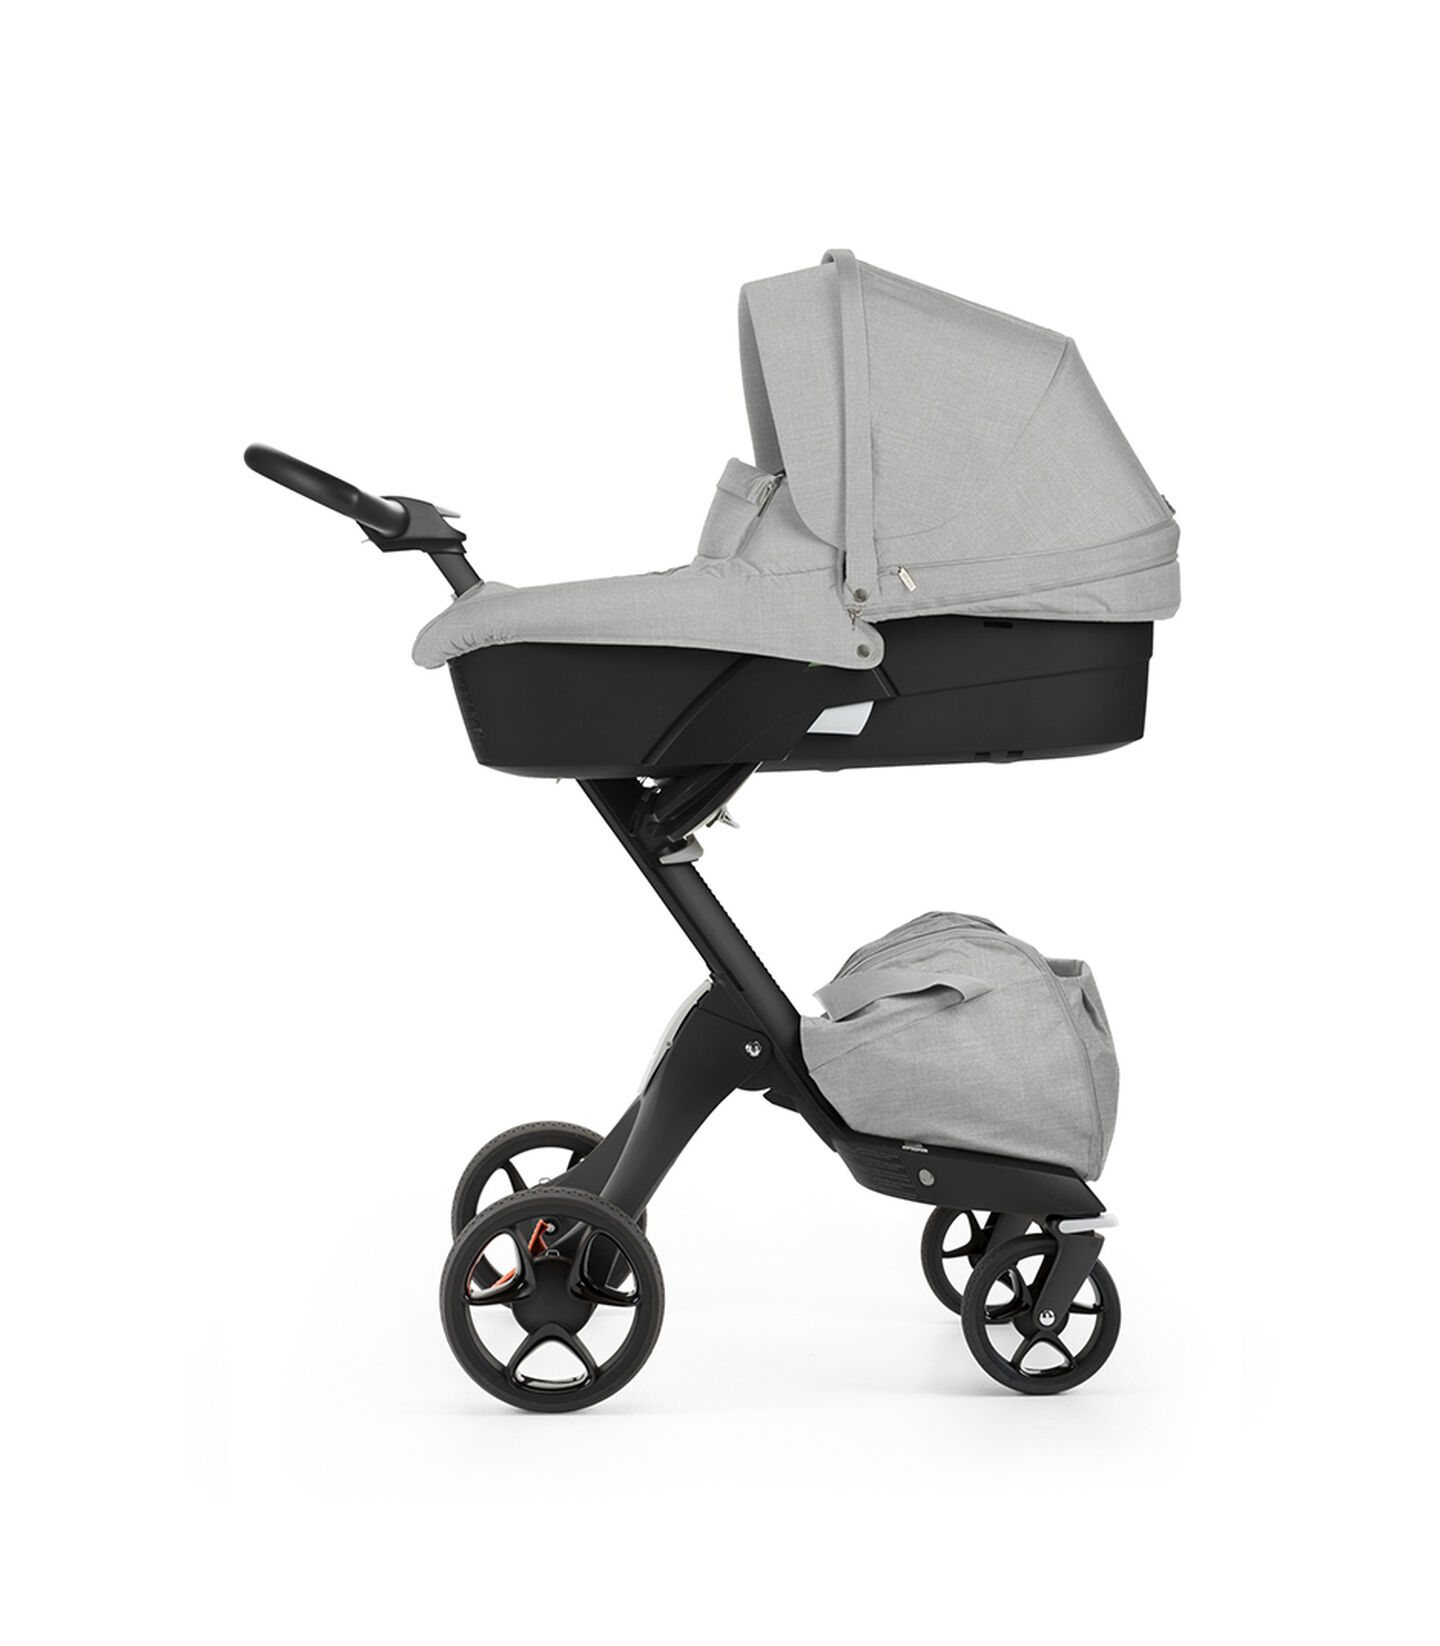 Stokke® Xplory® with Black chassis and Carry Cot, Grey Melange. New wheels 2016.